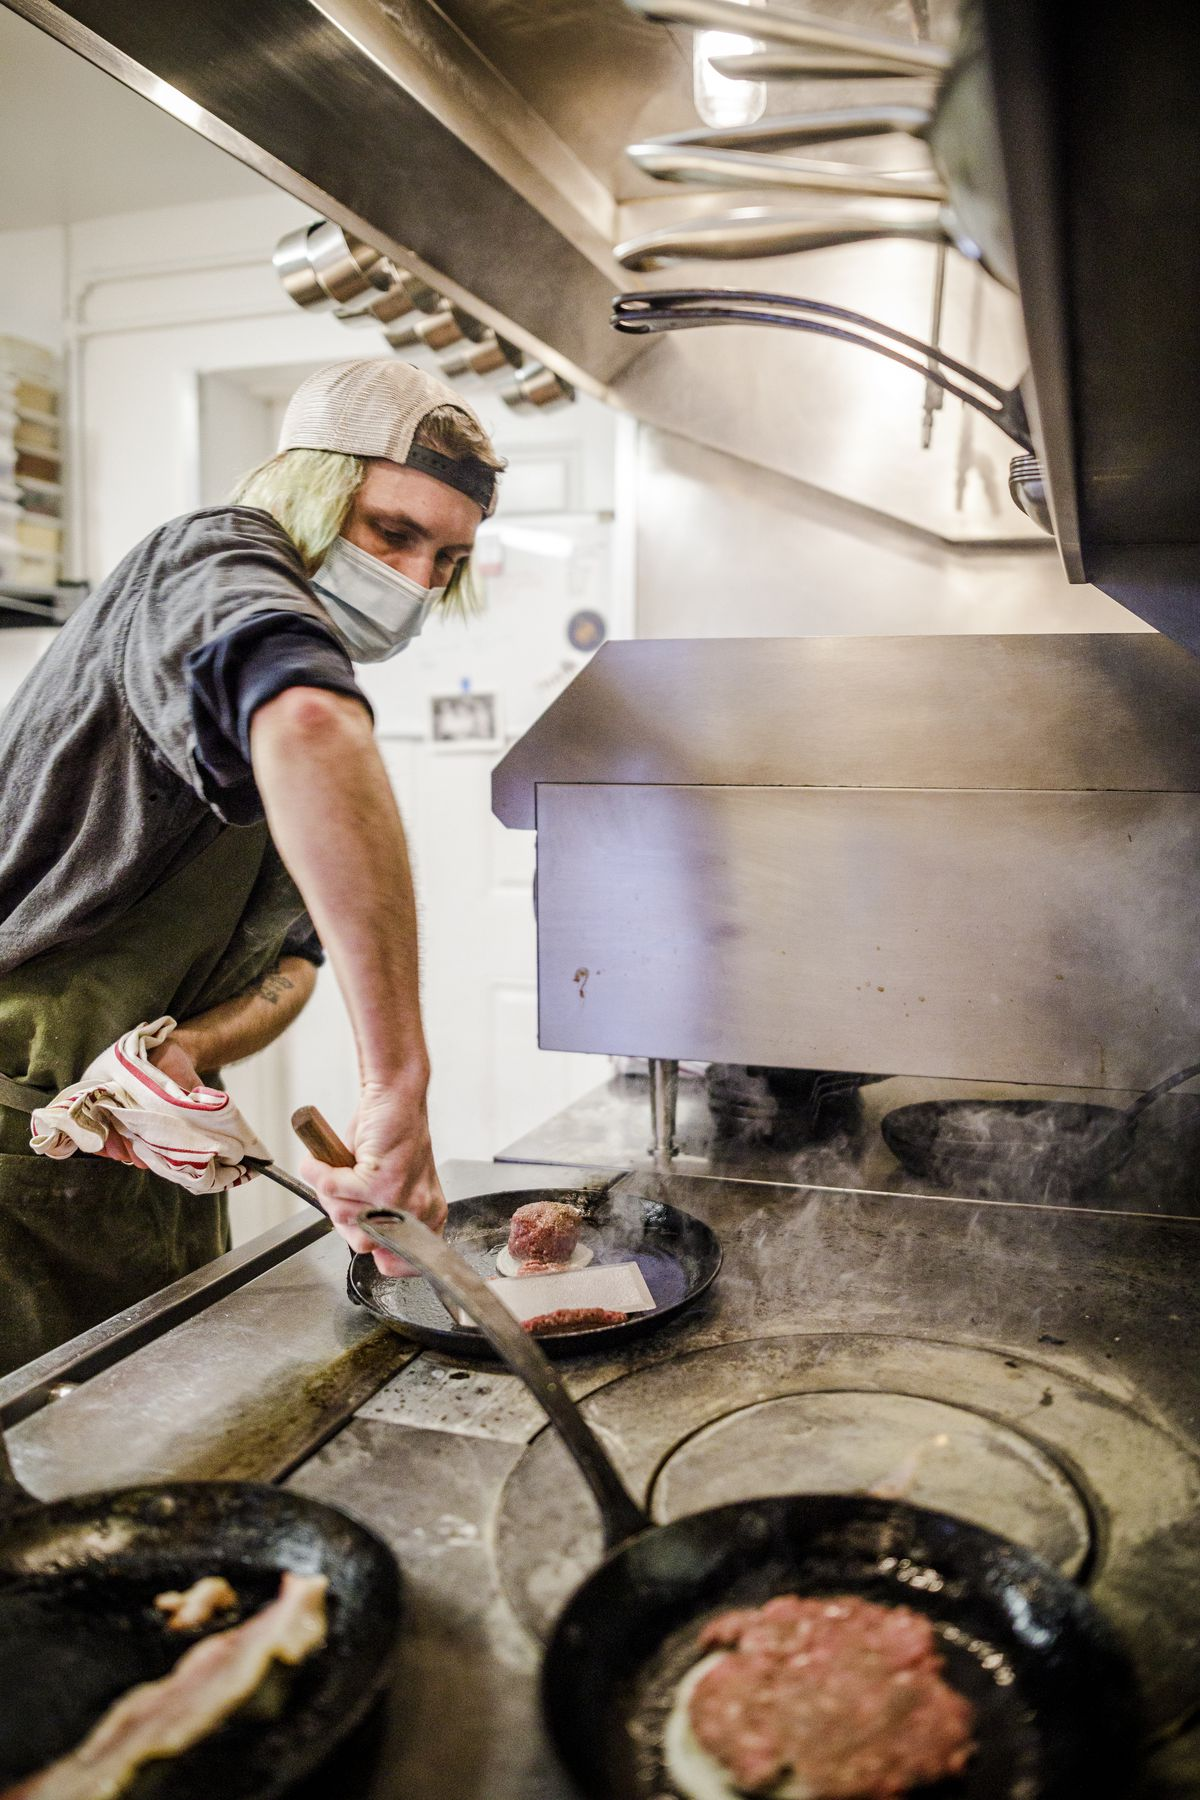 A man with blue-green hair smashes a beef patty into a sizzling cast iron plate